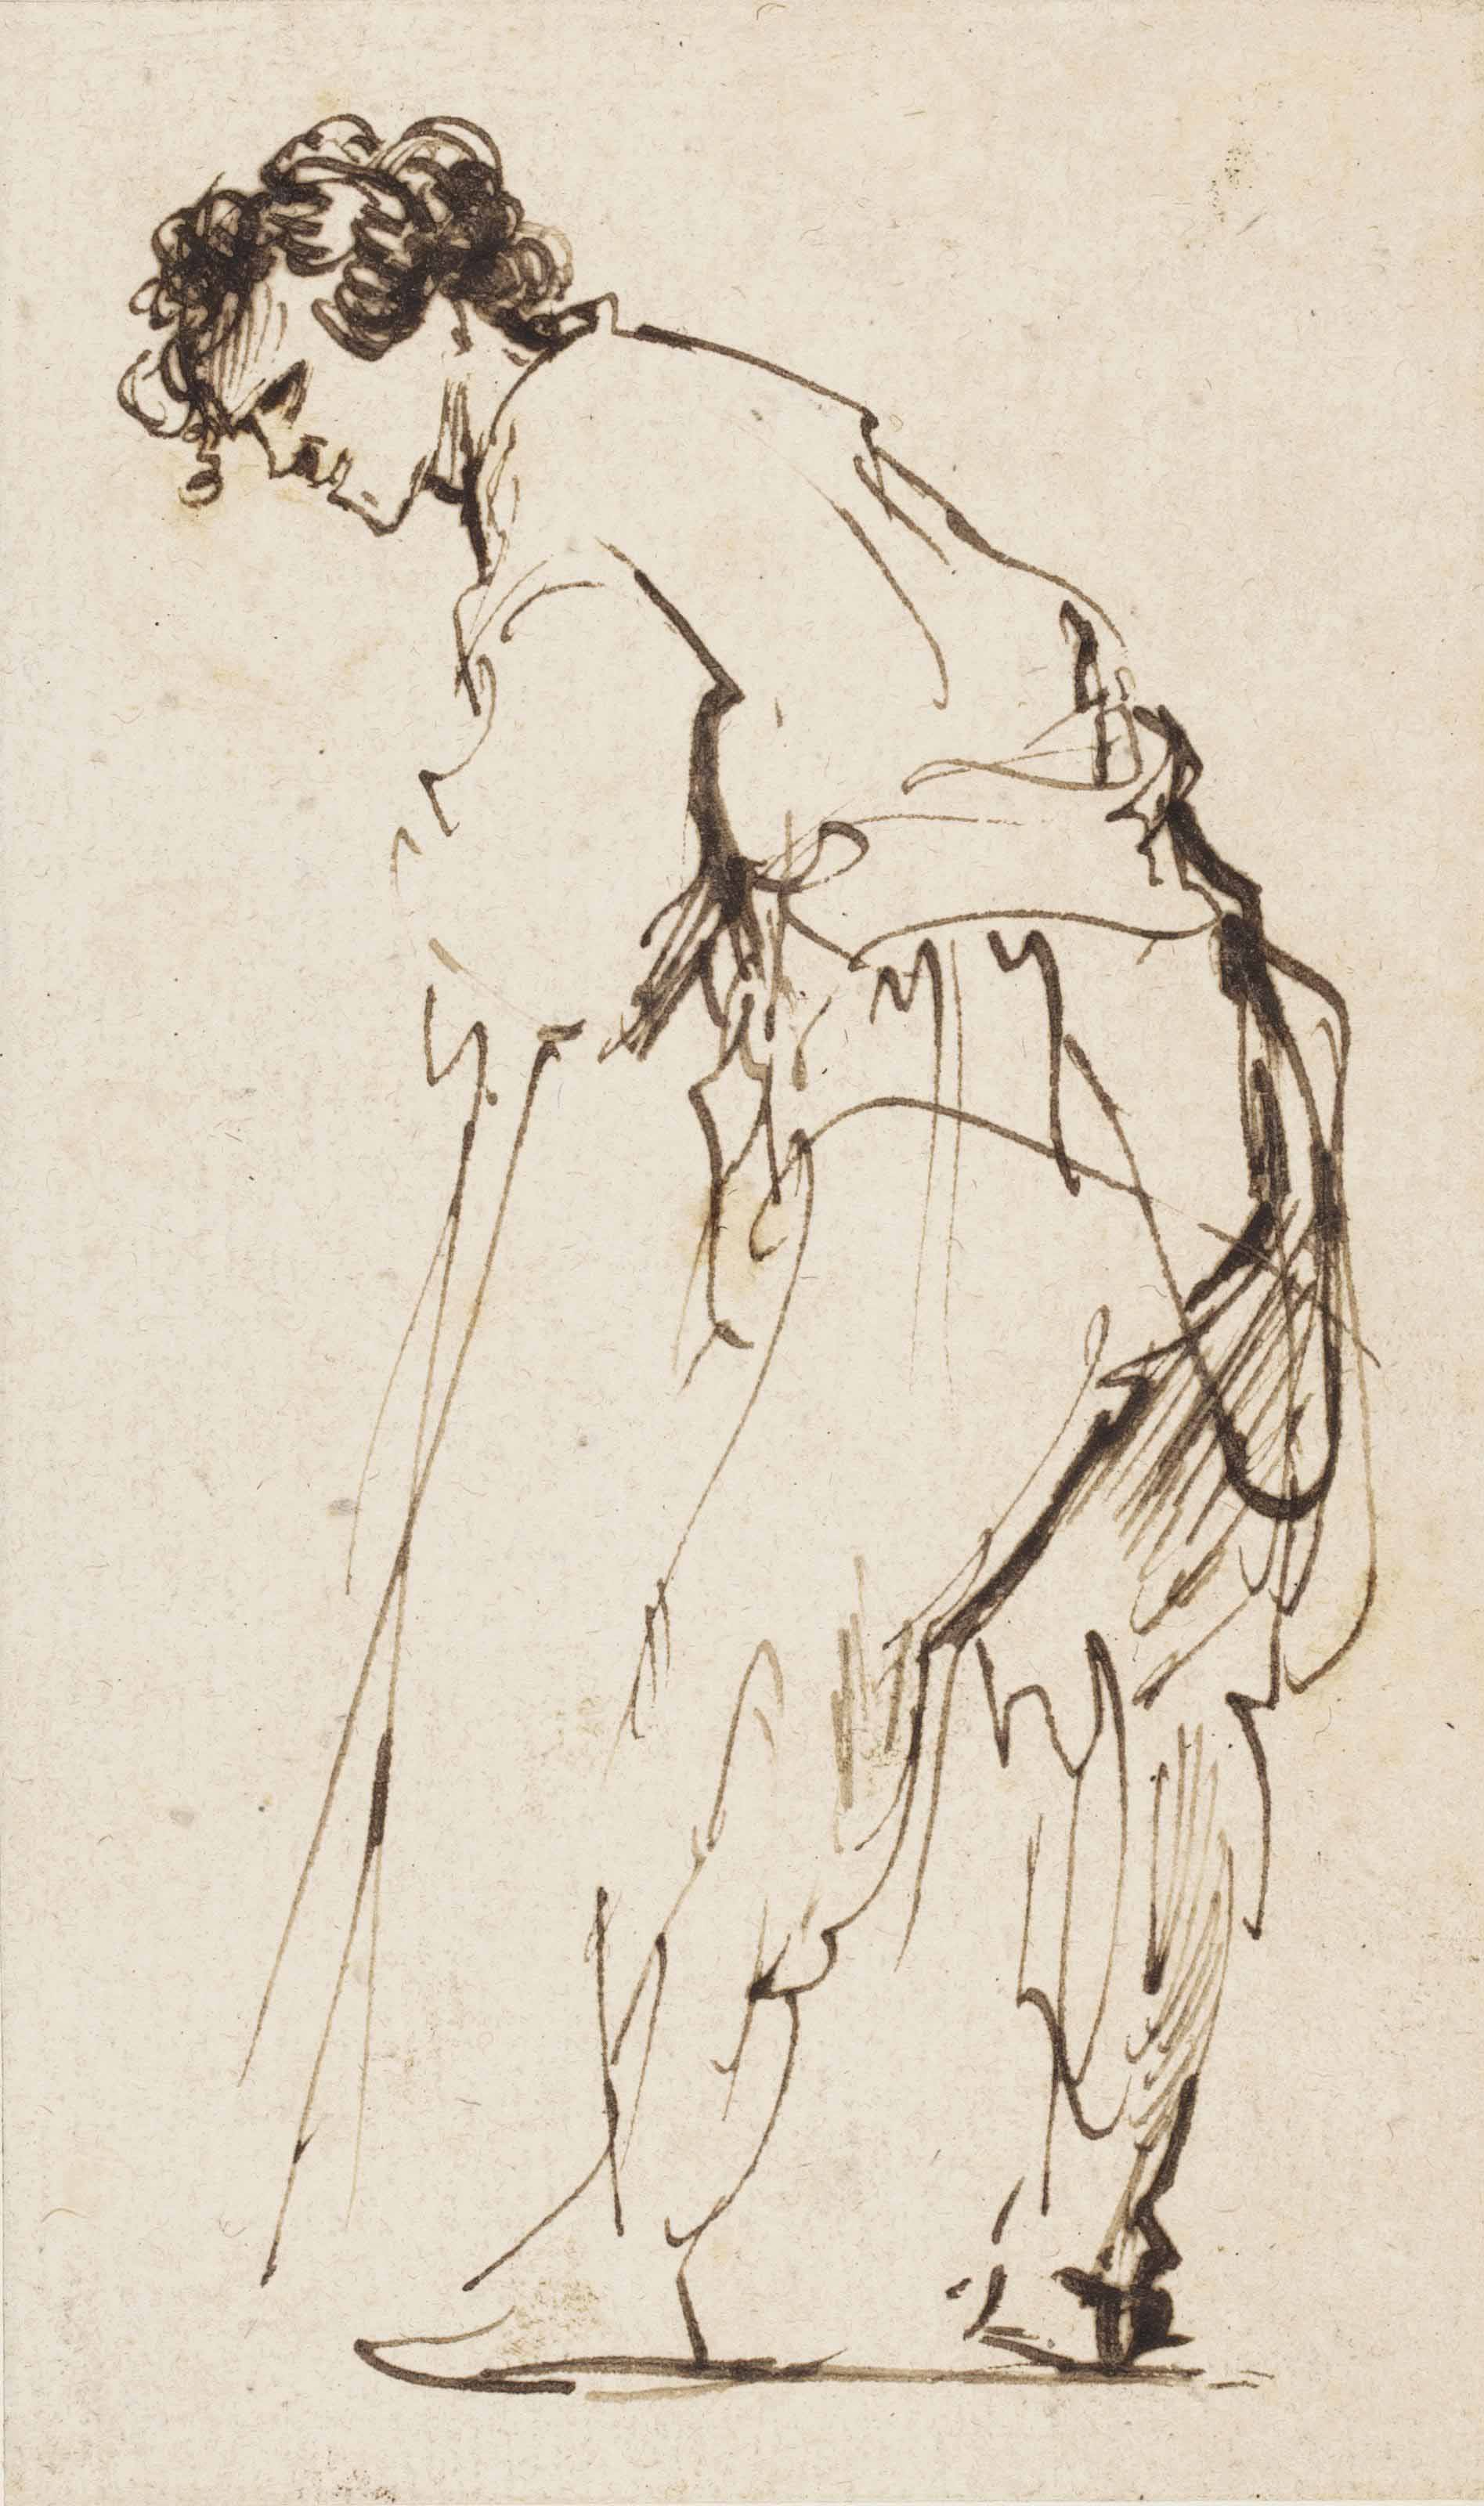 A young man leaning on a stick